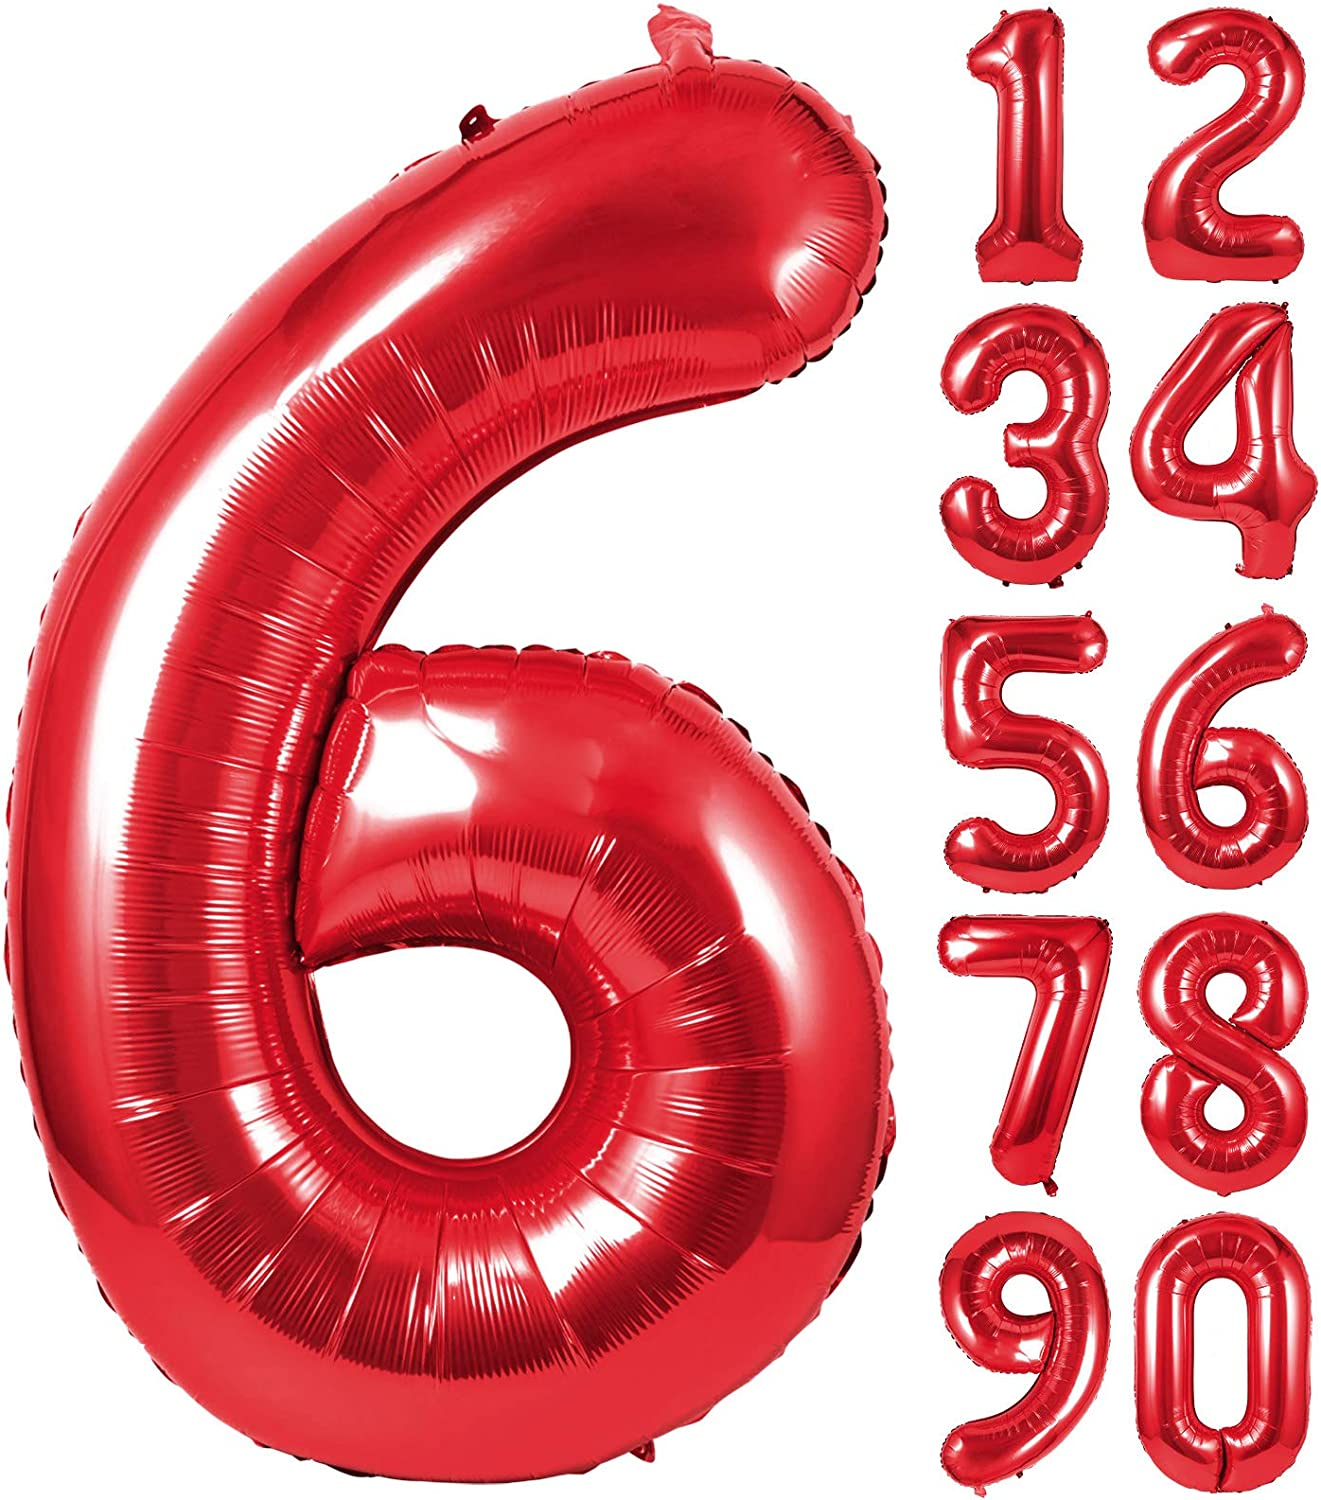 Single Red Large Number 6 Helium Foil Mylar Big Balloon for Birthday Party and Baby Shower Decorations 40 Inch Red Number Balloons